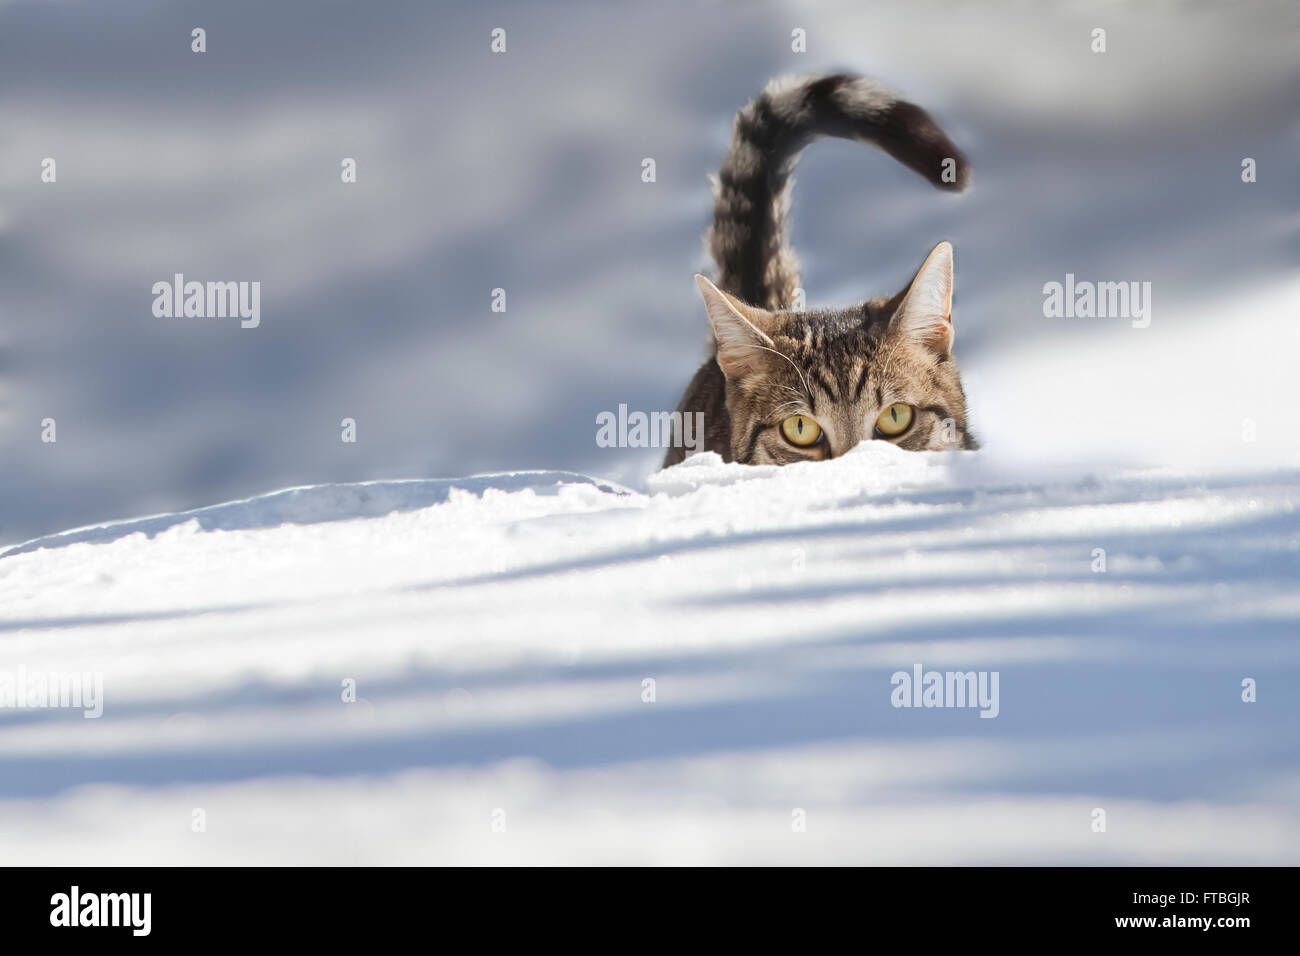 Cat walking through fresh snow, Bavaria, Germany Stock Photo